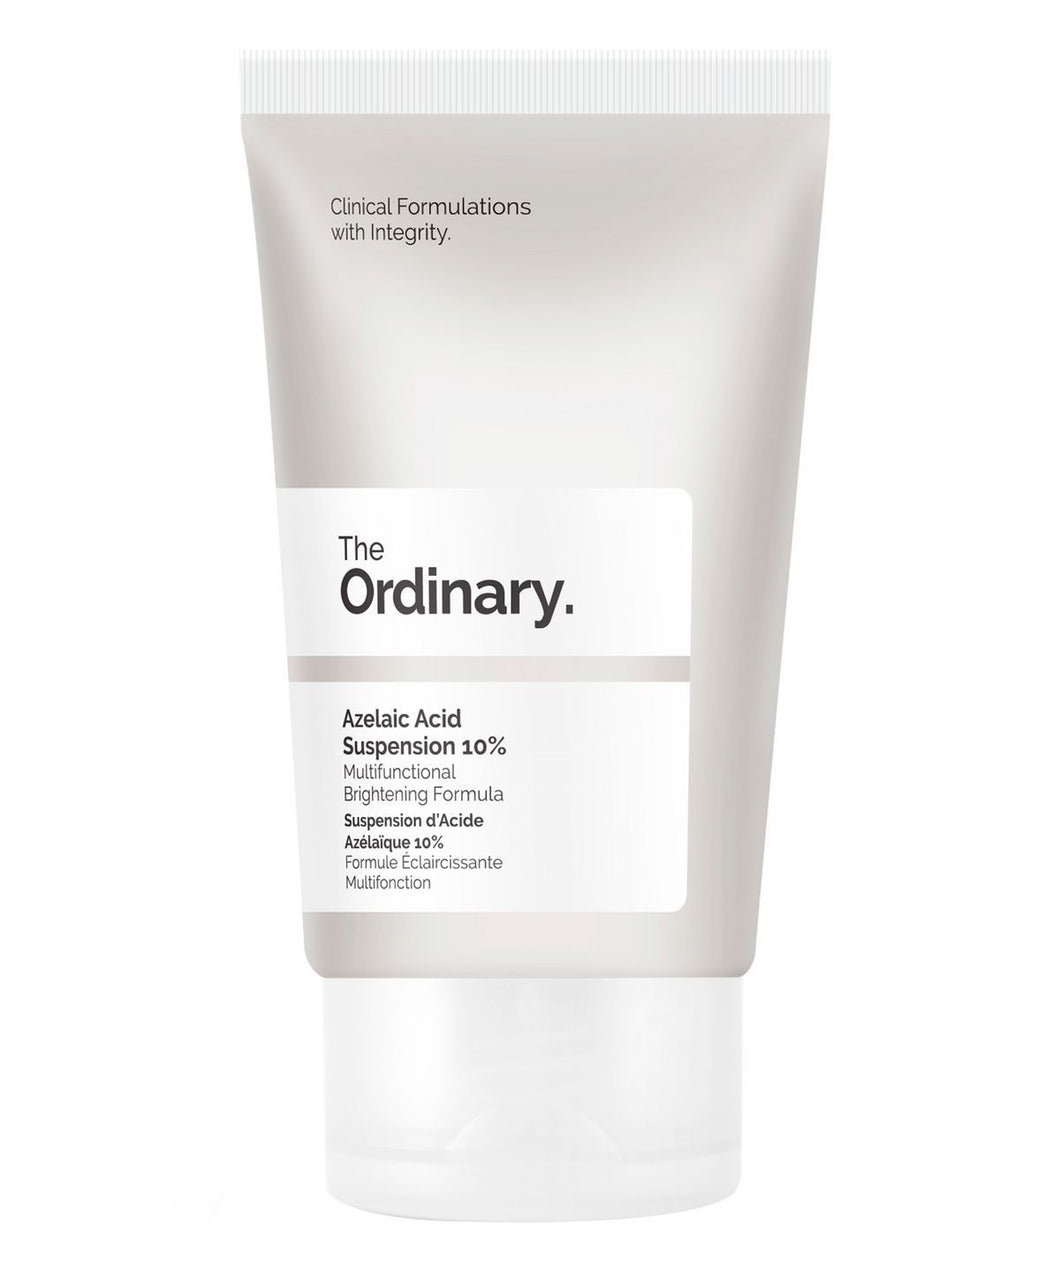 Azelaic Acid Suspension 10% by The Ordinary in UAE at Shopey.ae